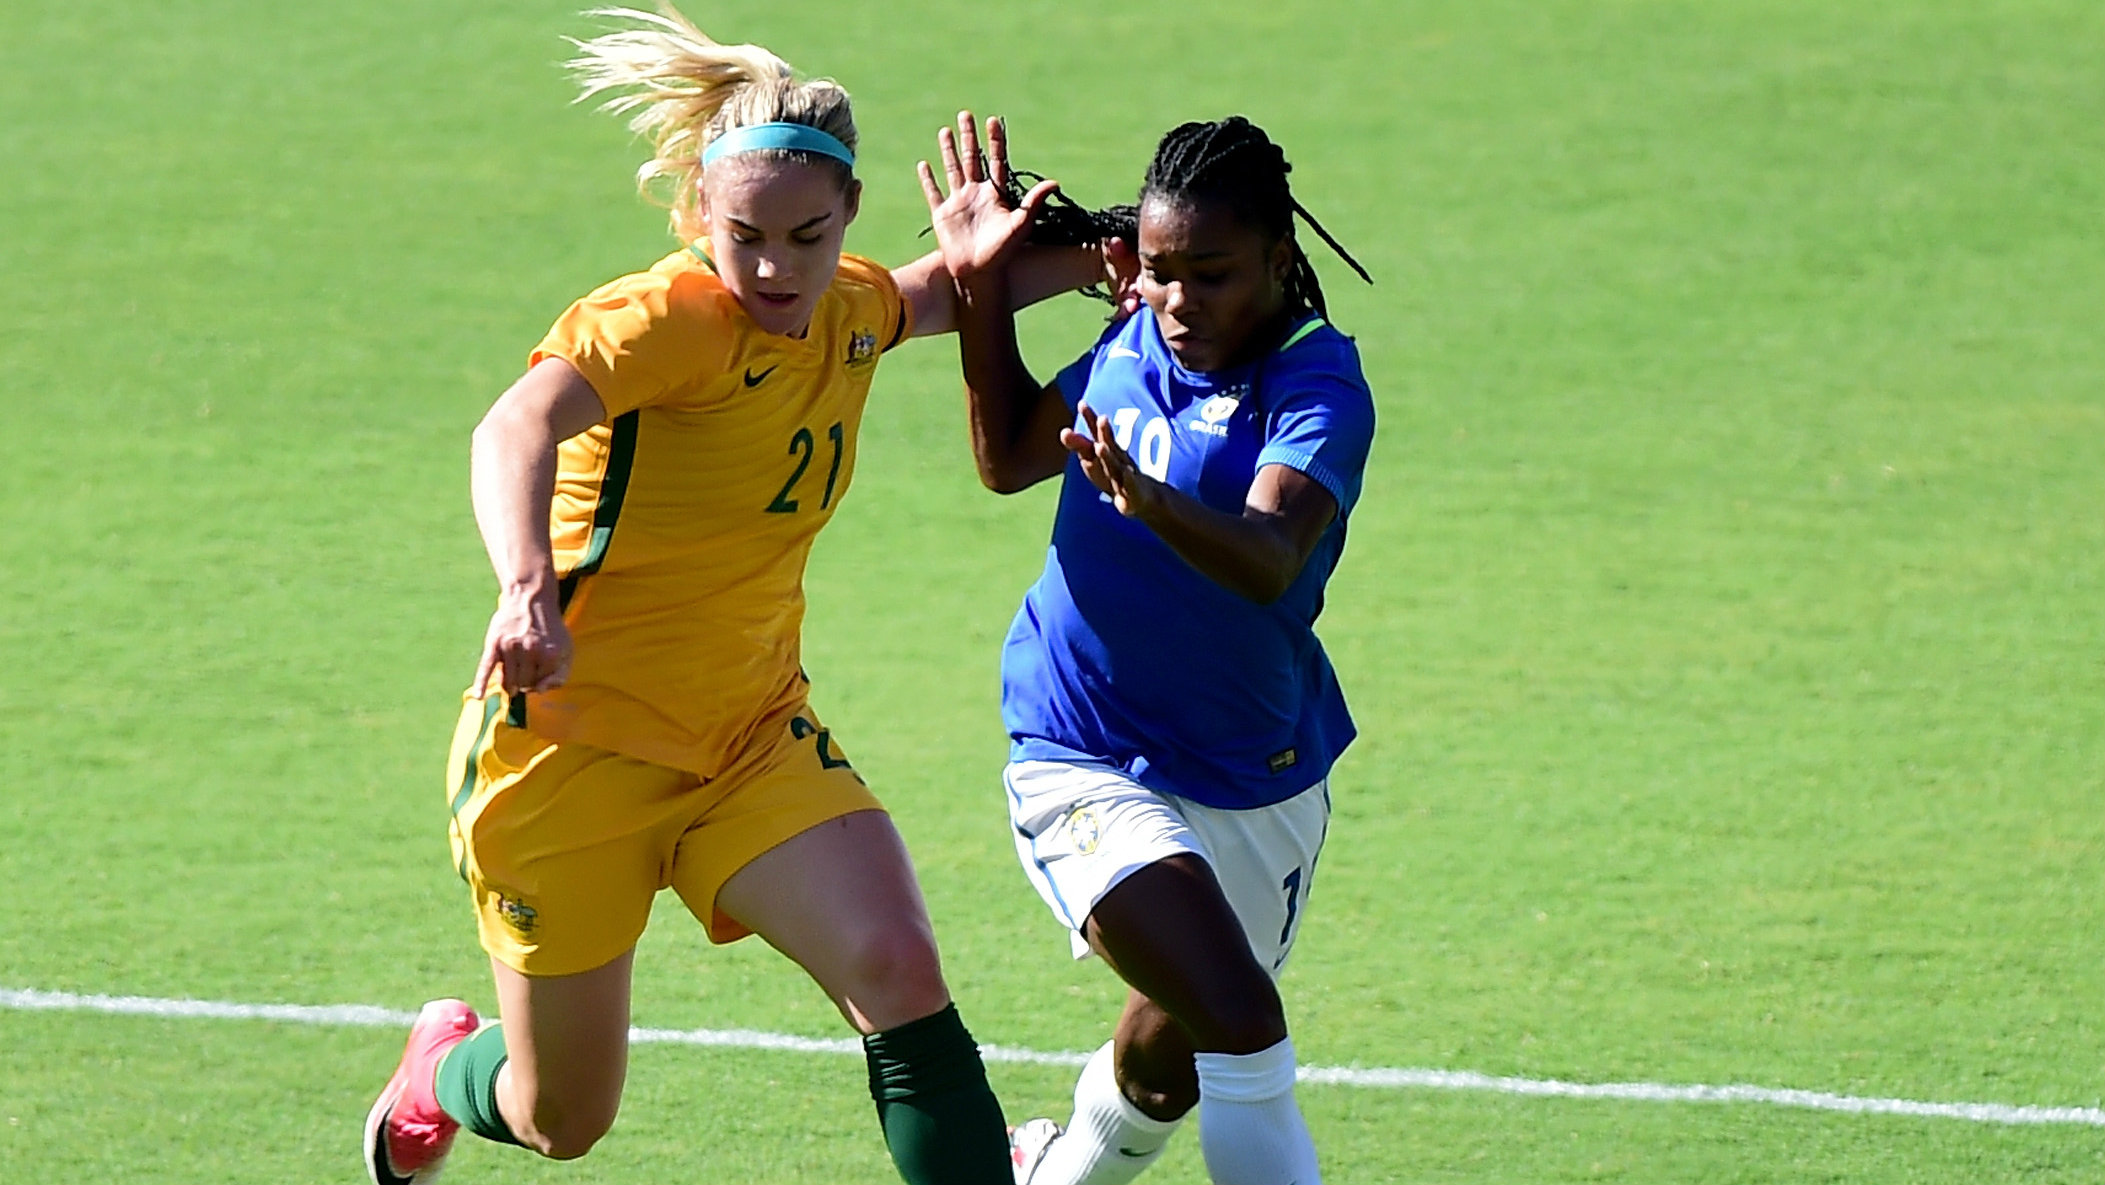 Ellie Carpenter has signed with Canberra United.